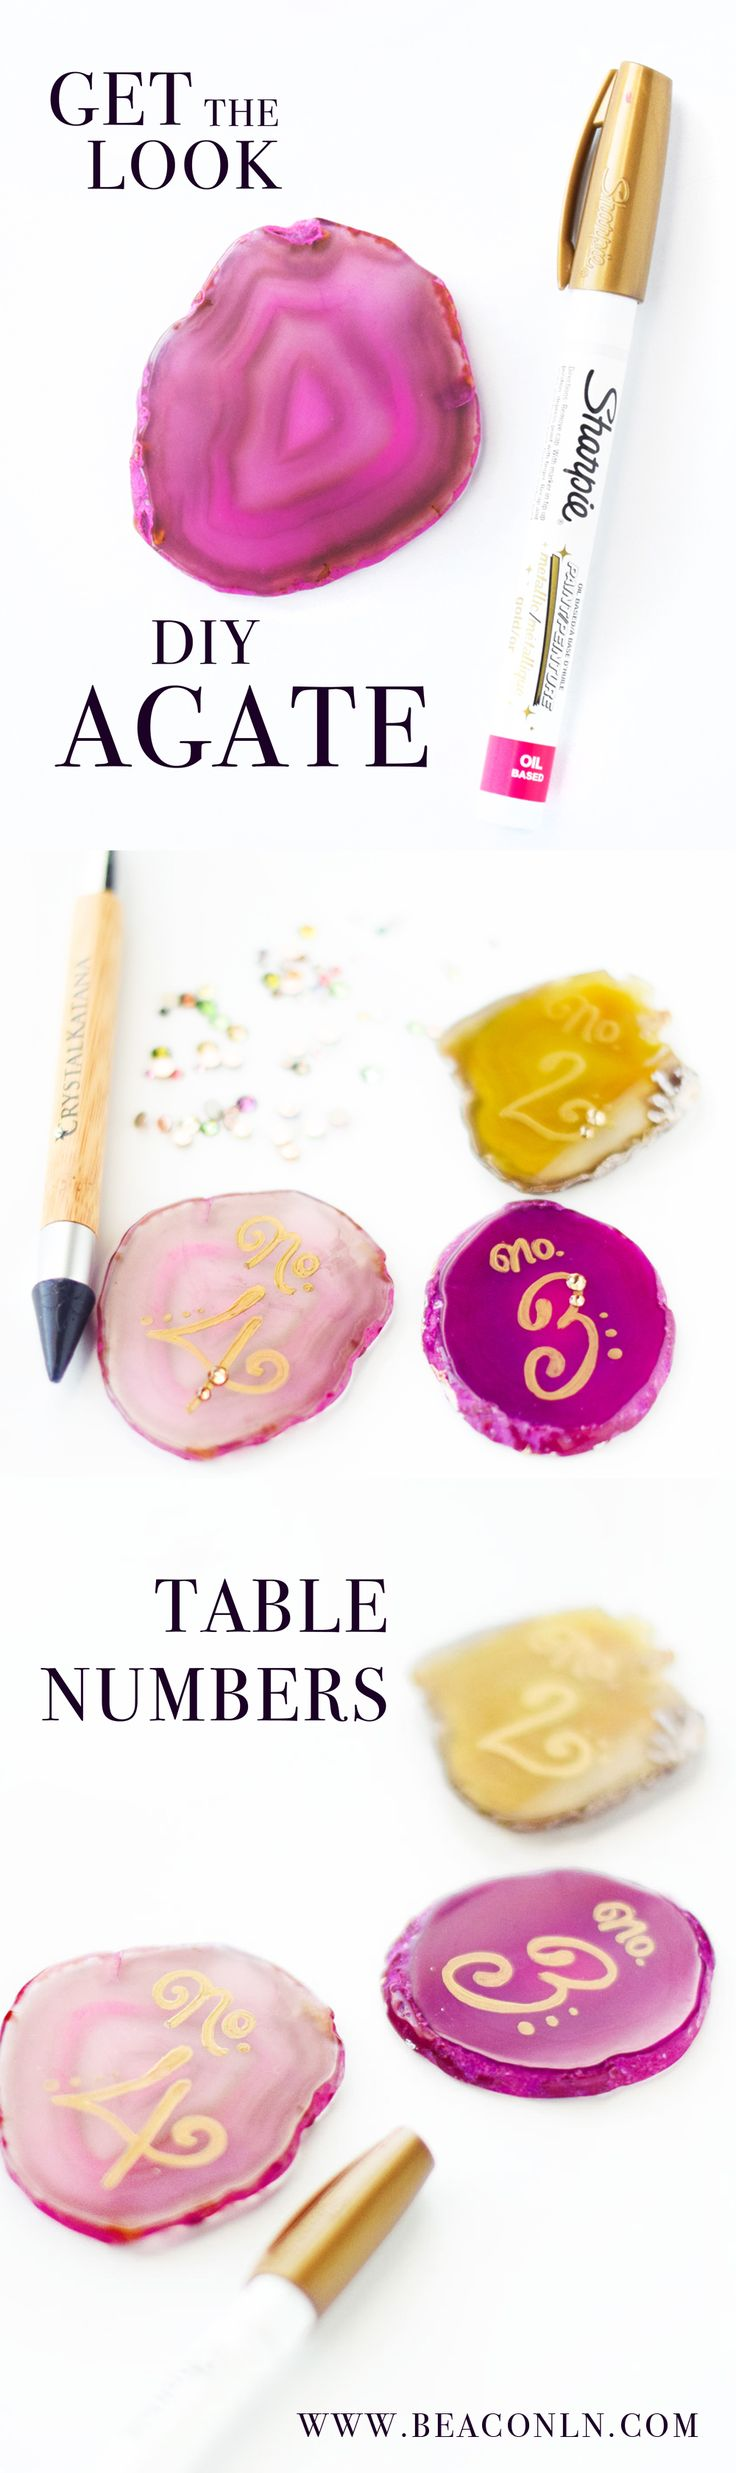 Looking for an easy DIY to add bohemian flair to your wedding tablescape? These DIY agate table numbers are earthy and rustic, while still providing a perfect color pop to your display.